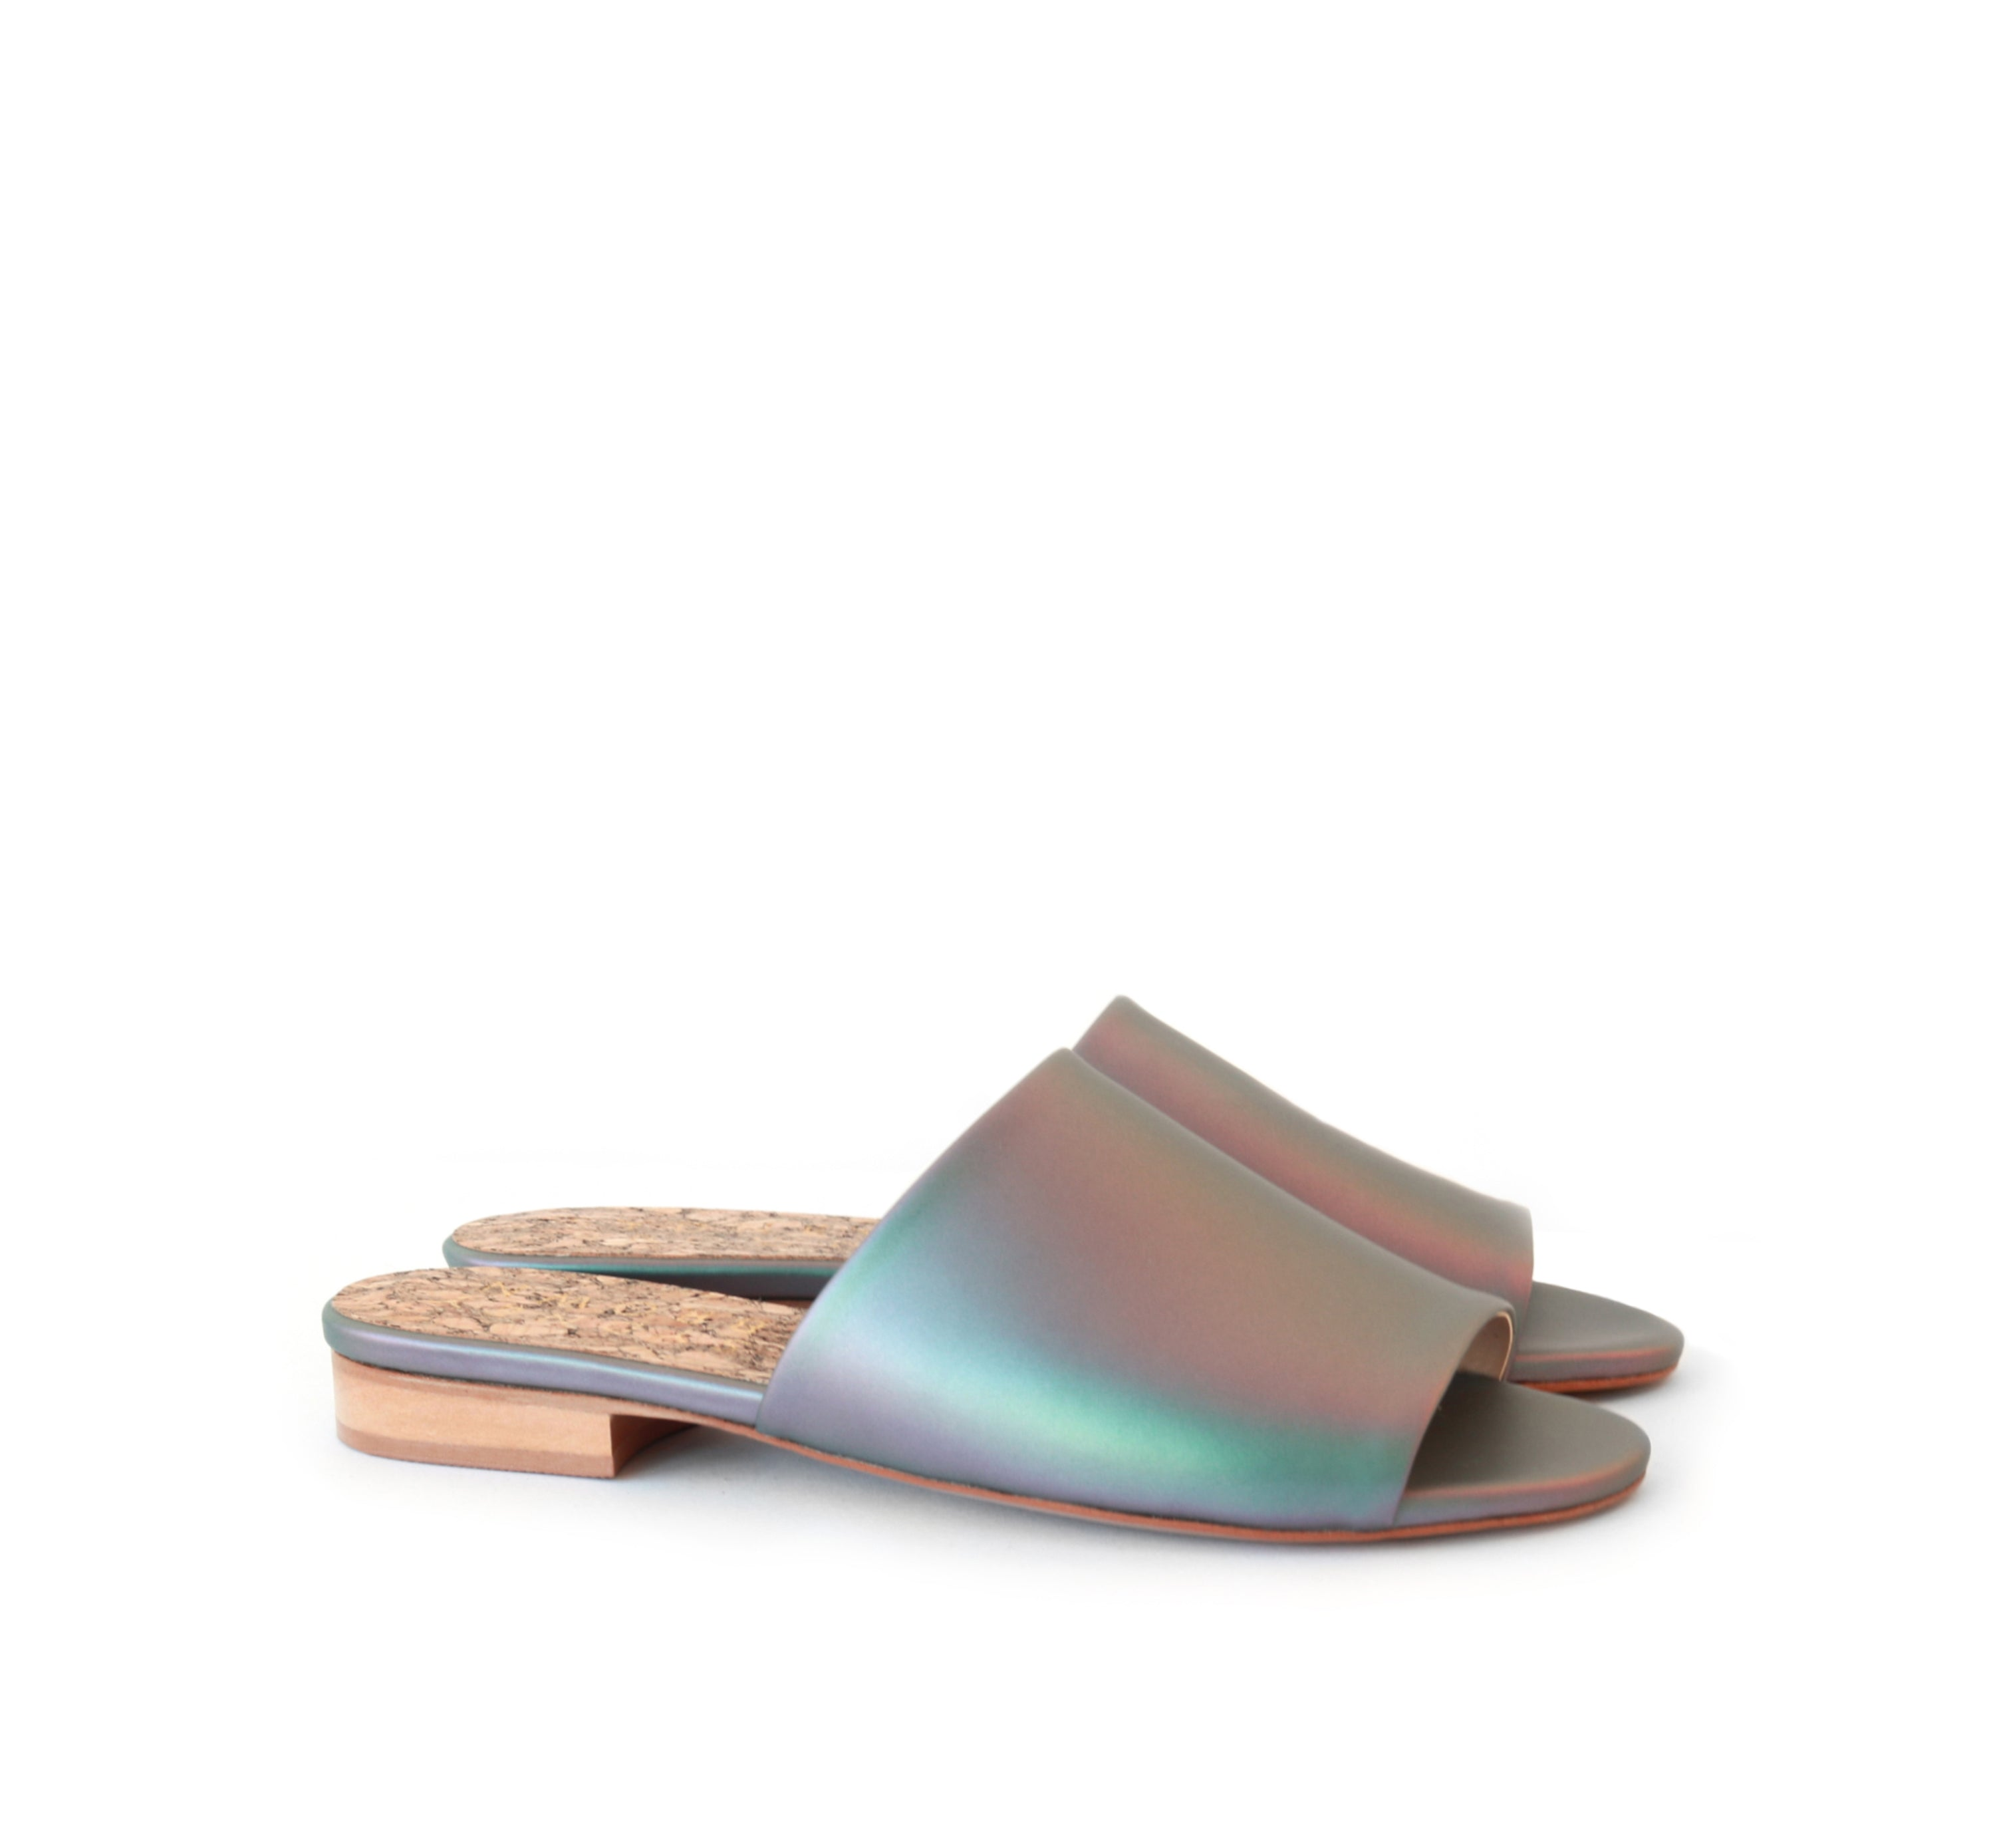 Flat slides in iridescent faux-nappa by Sydney Brown shoes. Vegan, cruelty-free, non-leather, sustainable & ethical